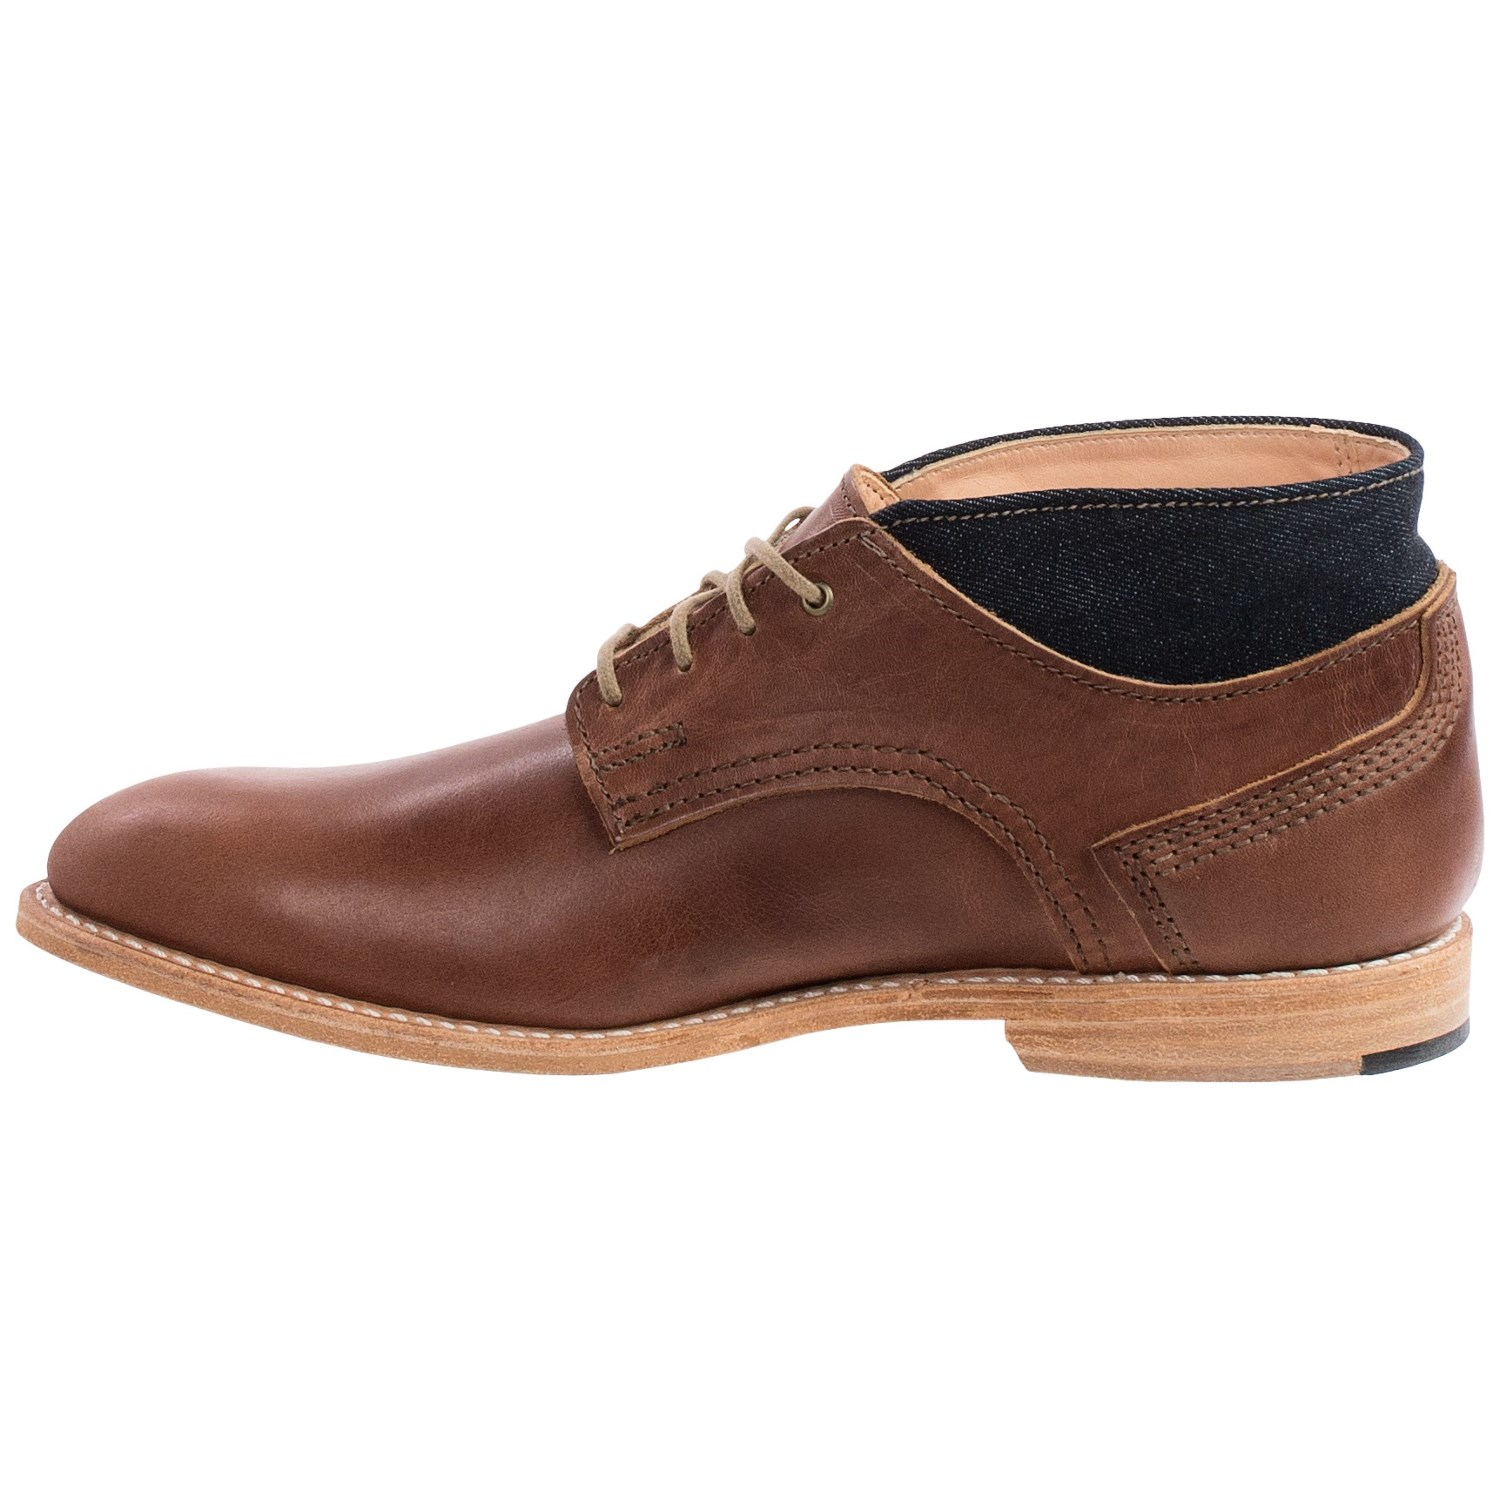 Timberland Coulter Chukka Boots For Men Save 72